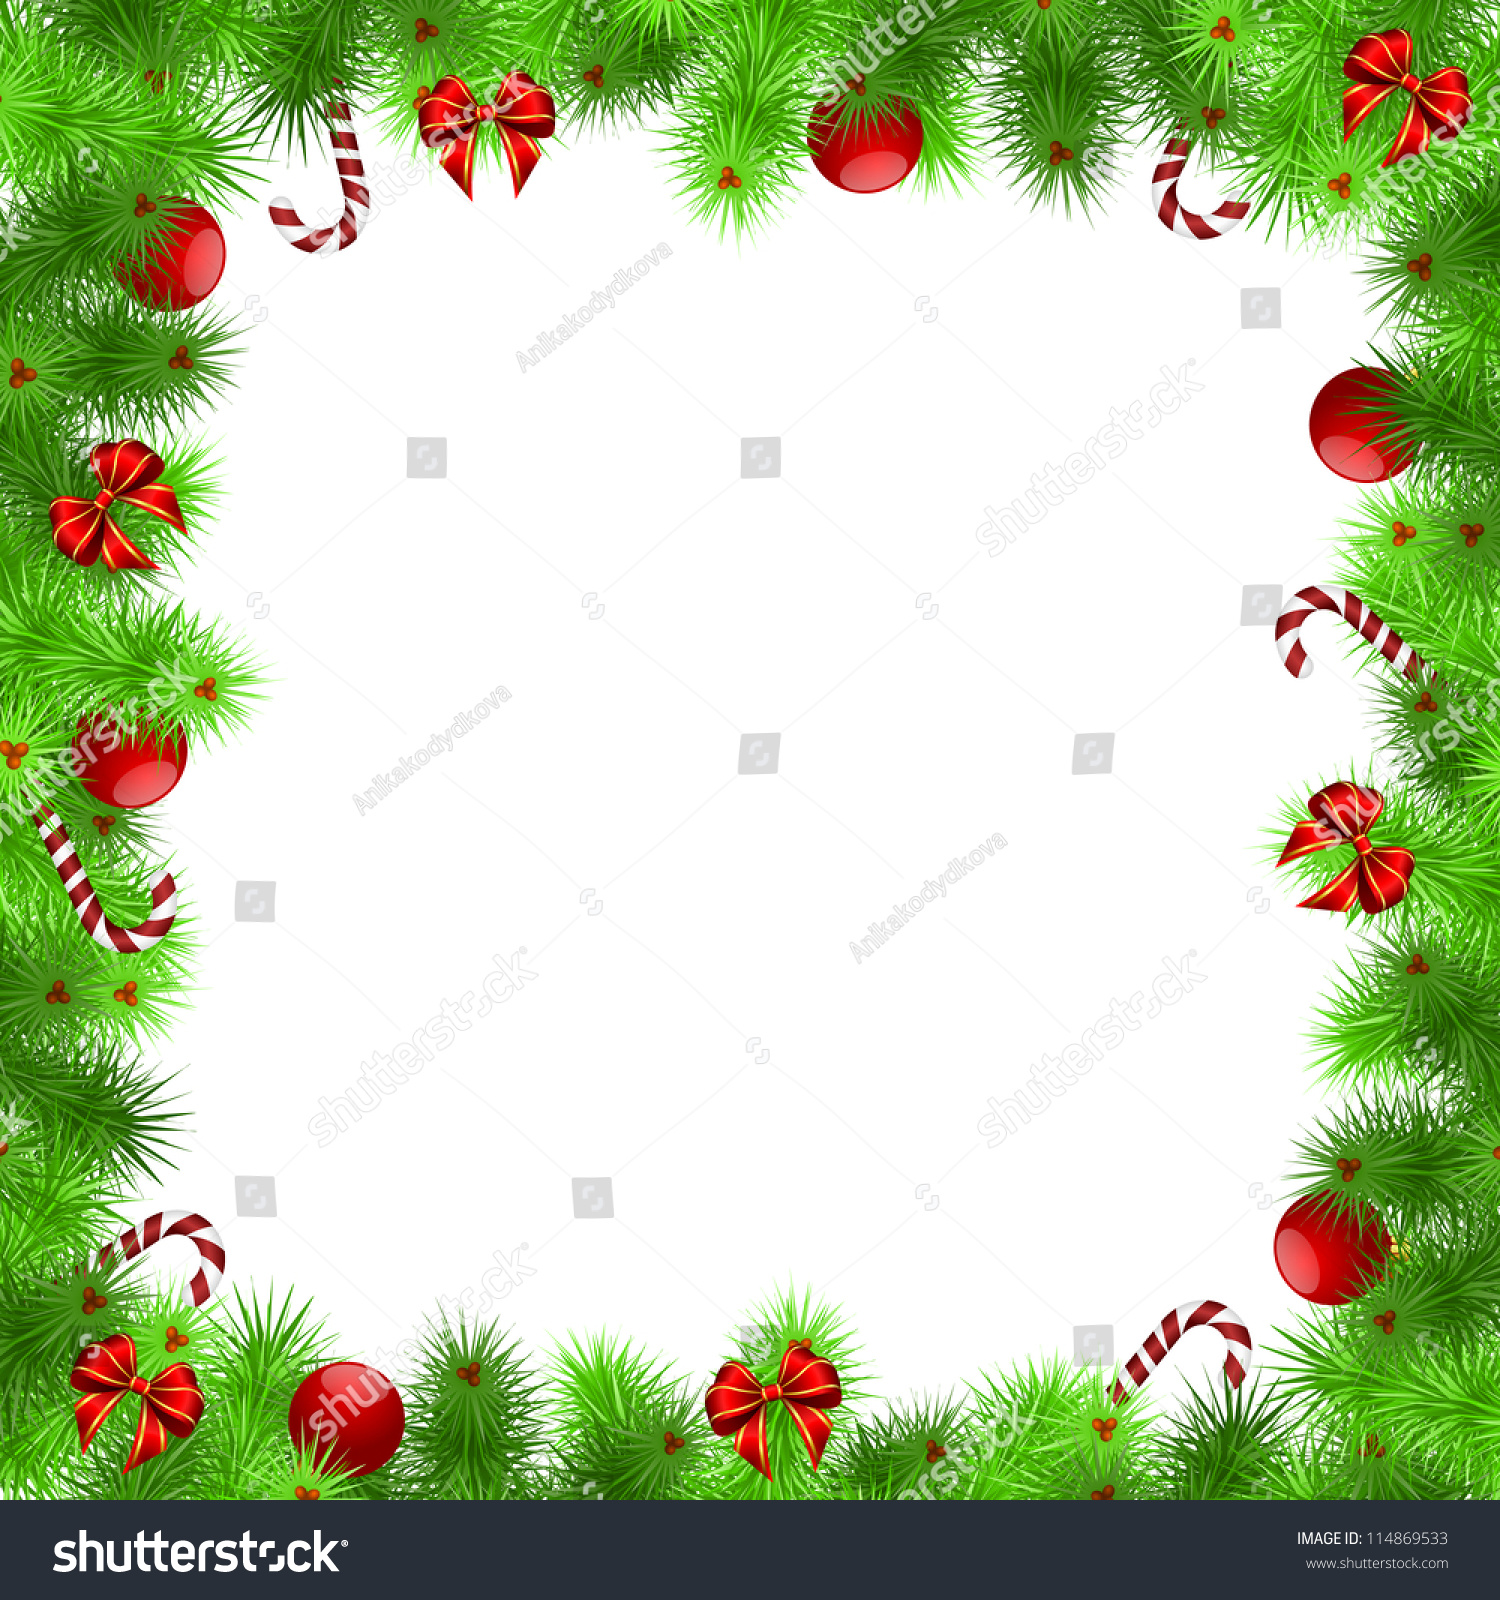 Christmas Frame Green Needles With Red Balls And Ribbons